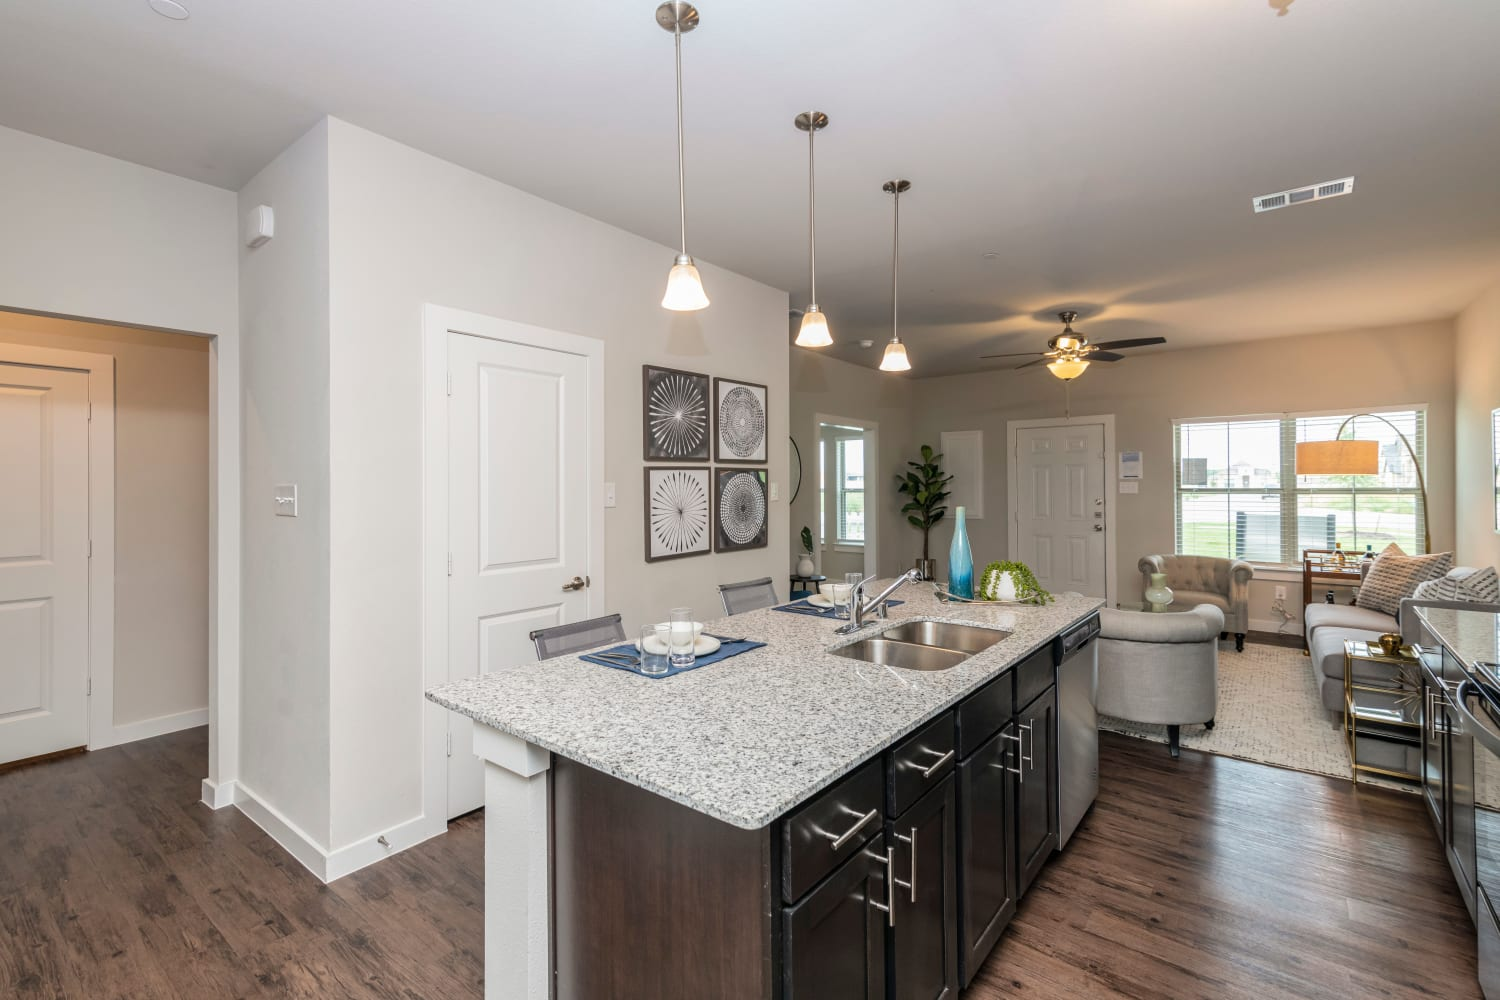 Model kitchen in a unit at Waxahachie, Texas